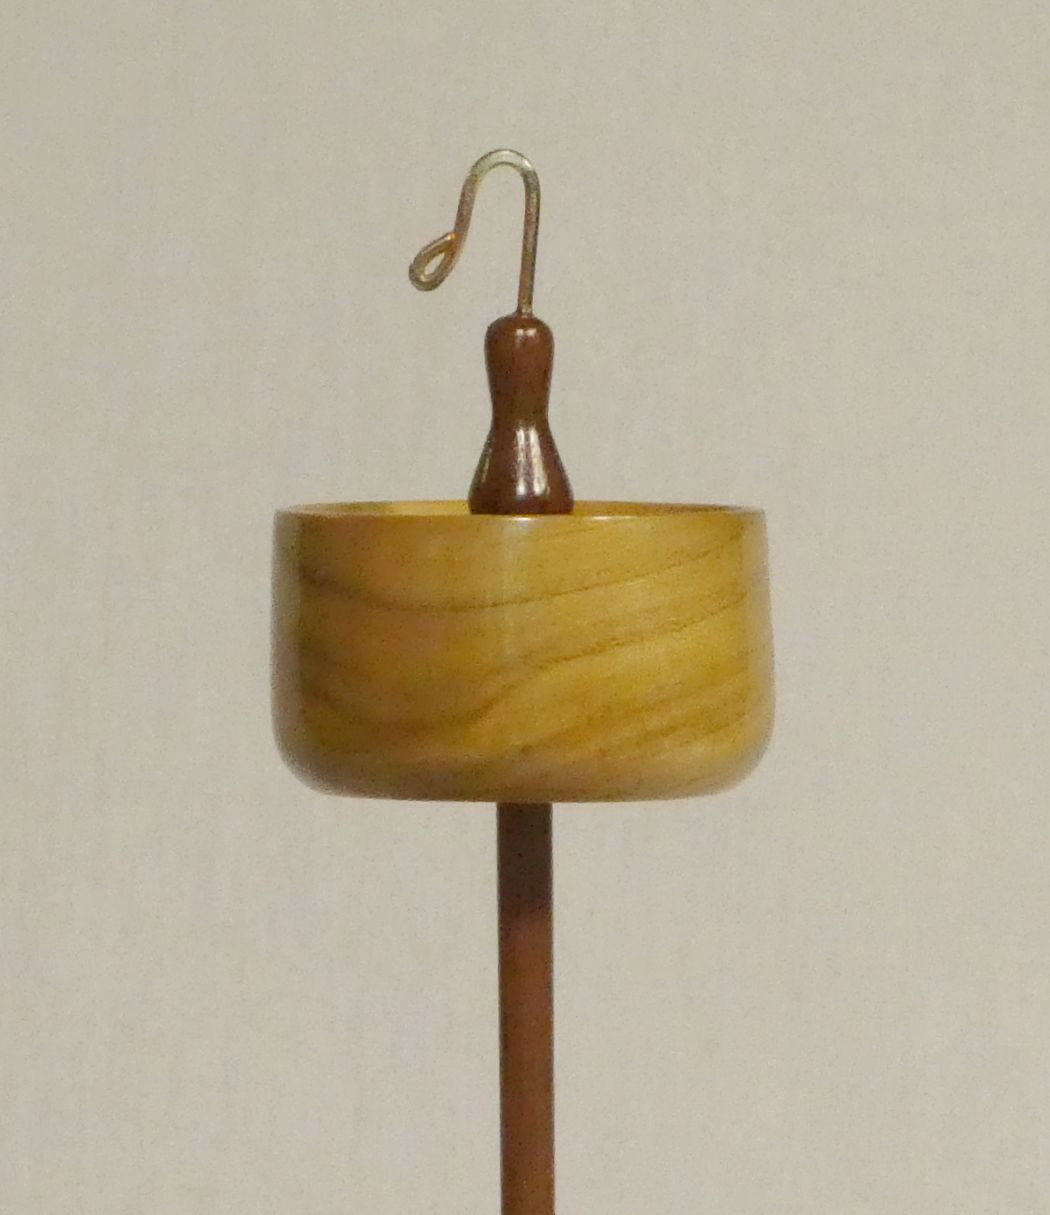 Tulip Poplar and Black Walnut top whorl drop spindle mid weight handmade by Cynthia D. Haney. This one of a kind heirloom high whorl spindle is rim weighted and notched with a hook. Easy to use when learning how to spin yarn.